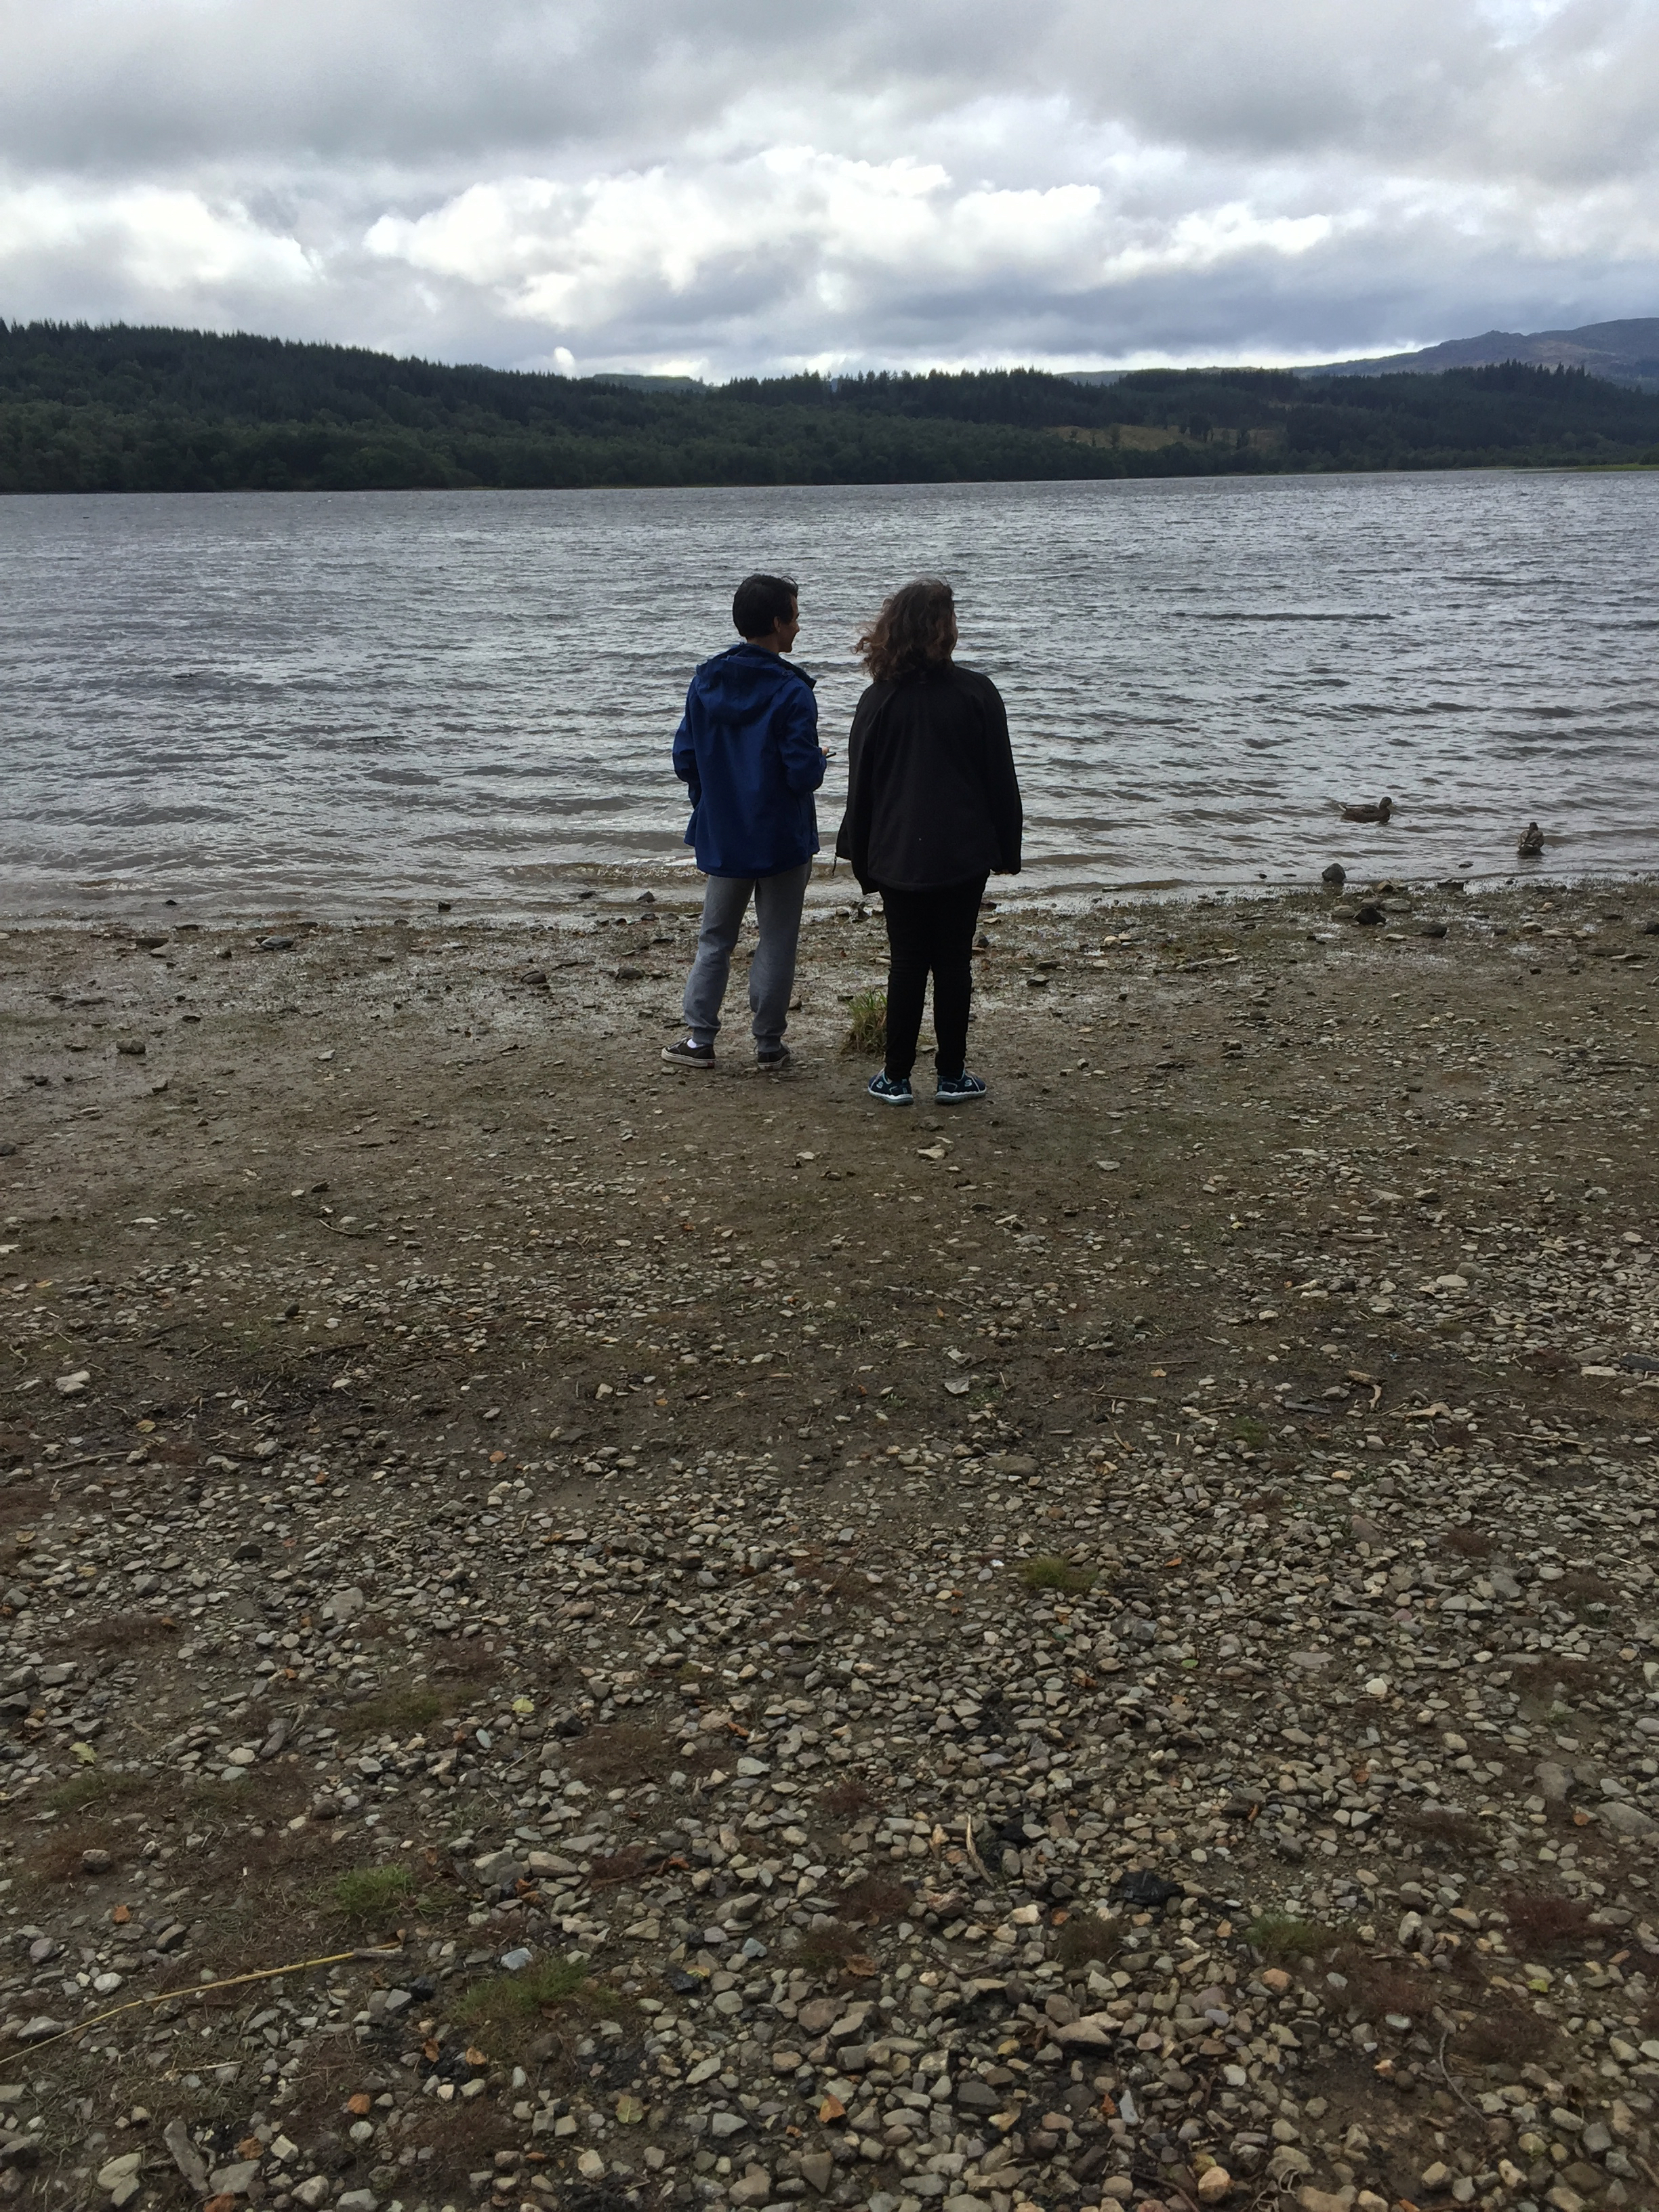 Two young people looking out across a lake